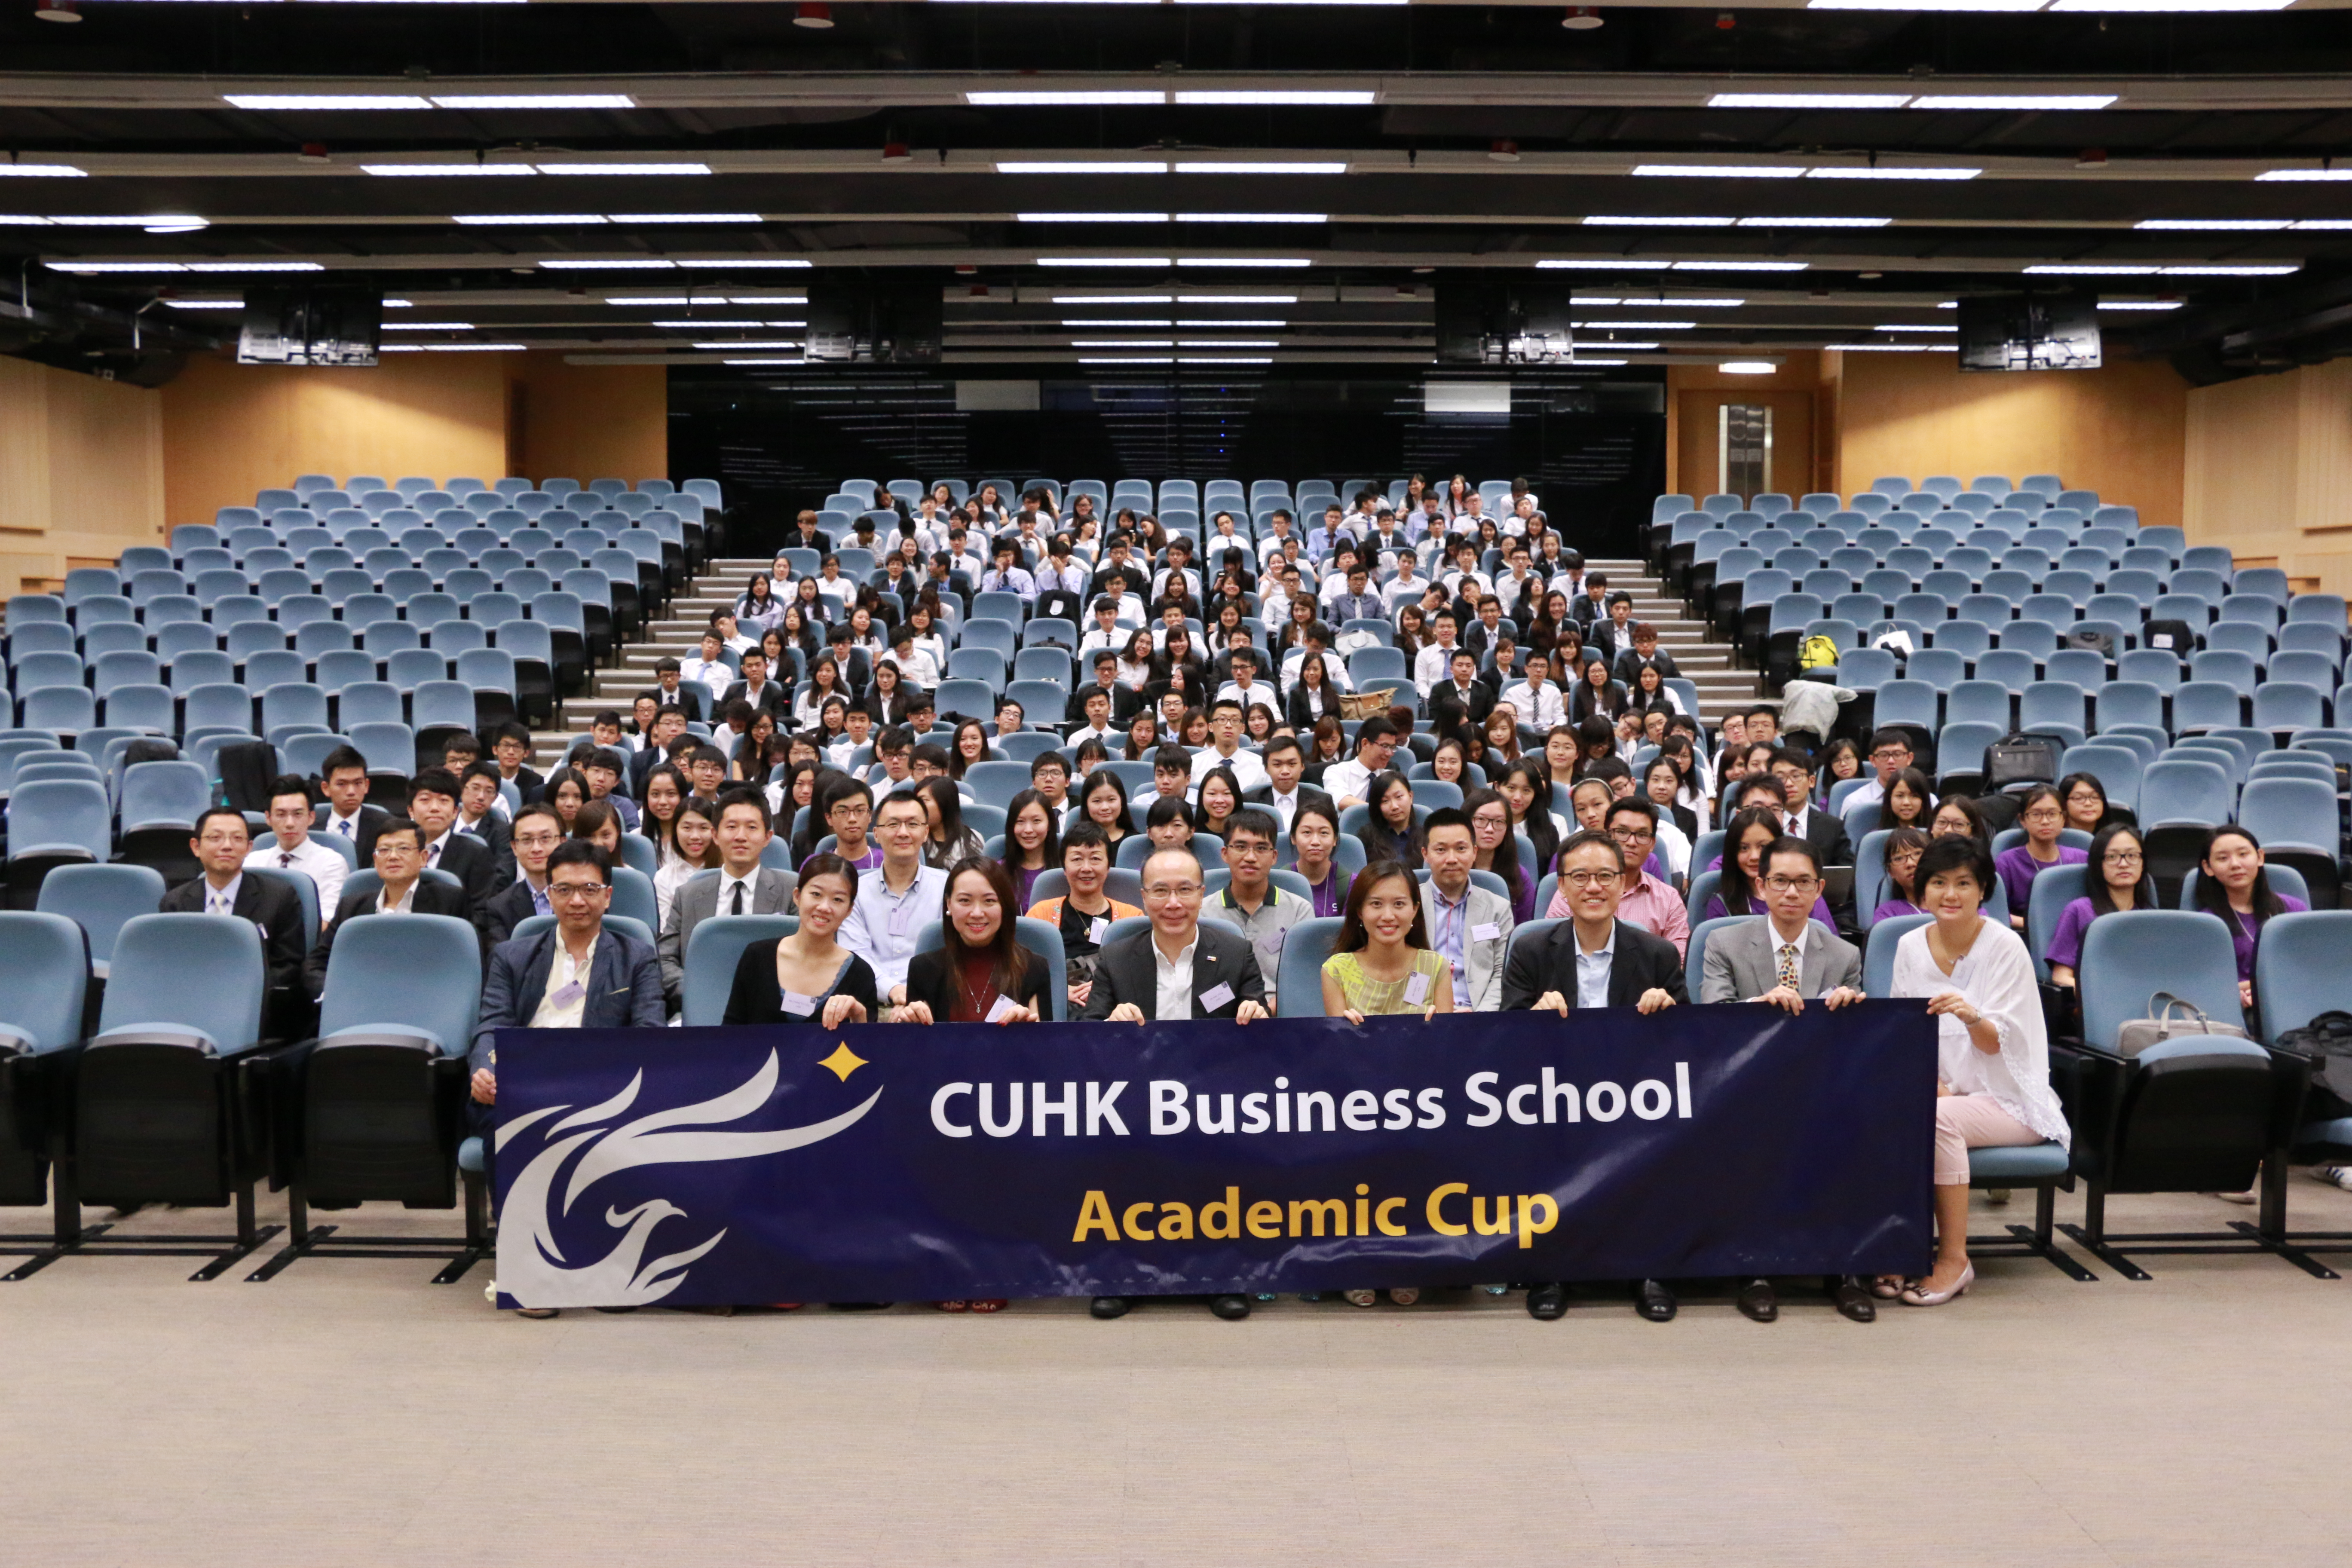 International case study competitions